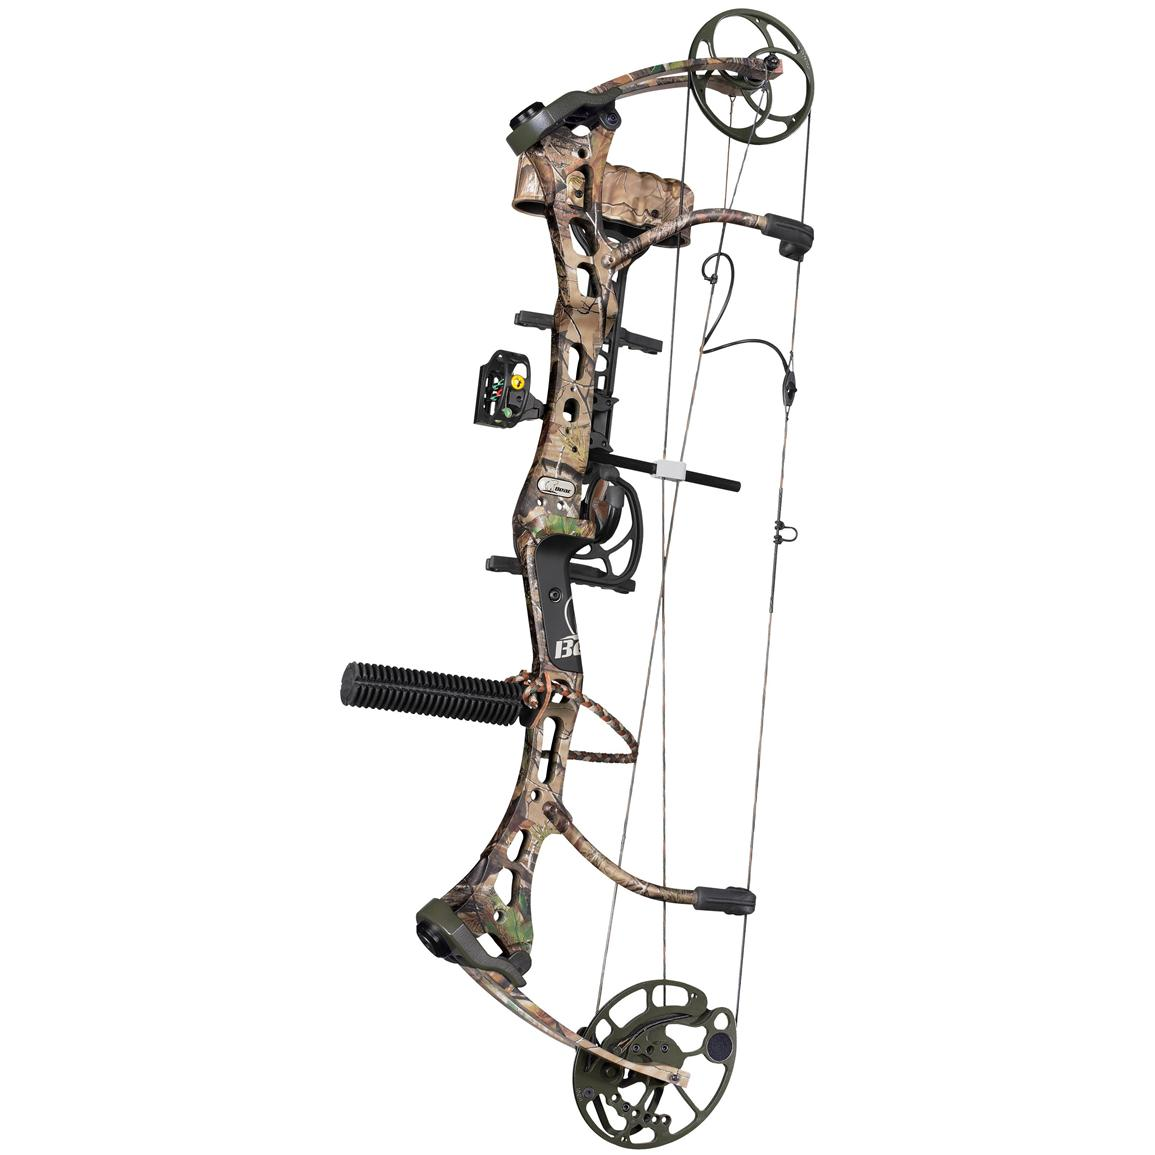 Bear Archery® Mauler™ Ready-to-Hunt Compound Bow Package